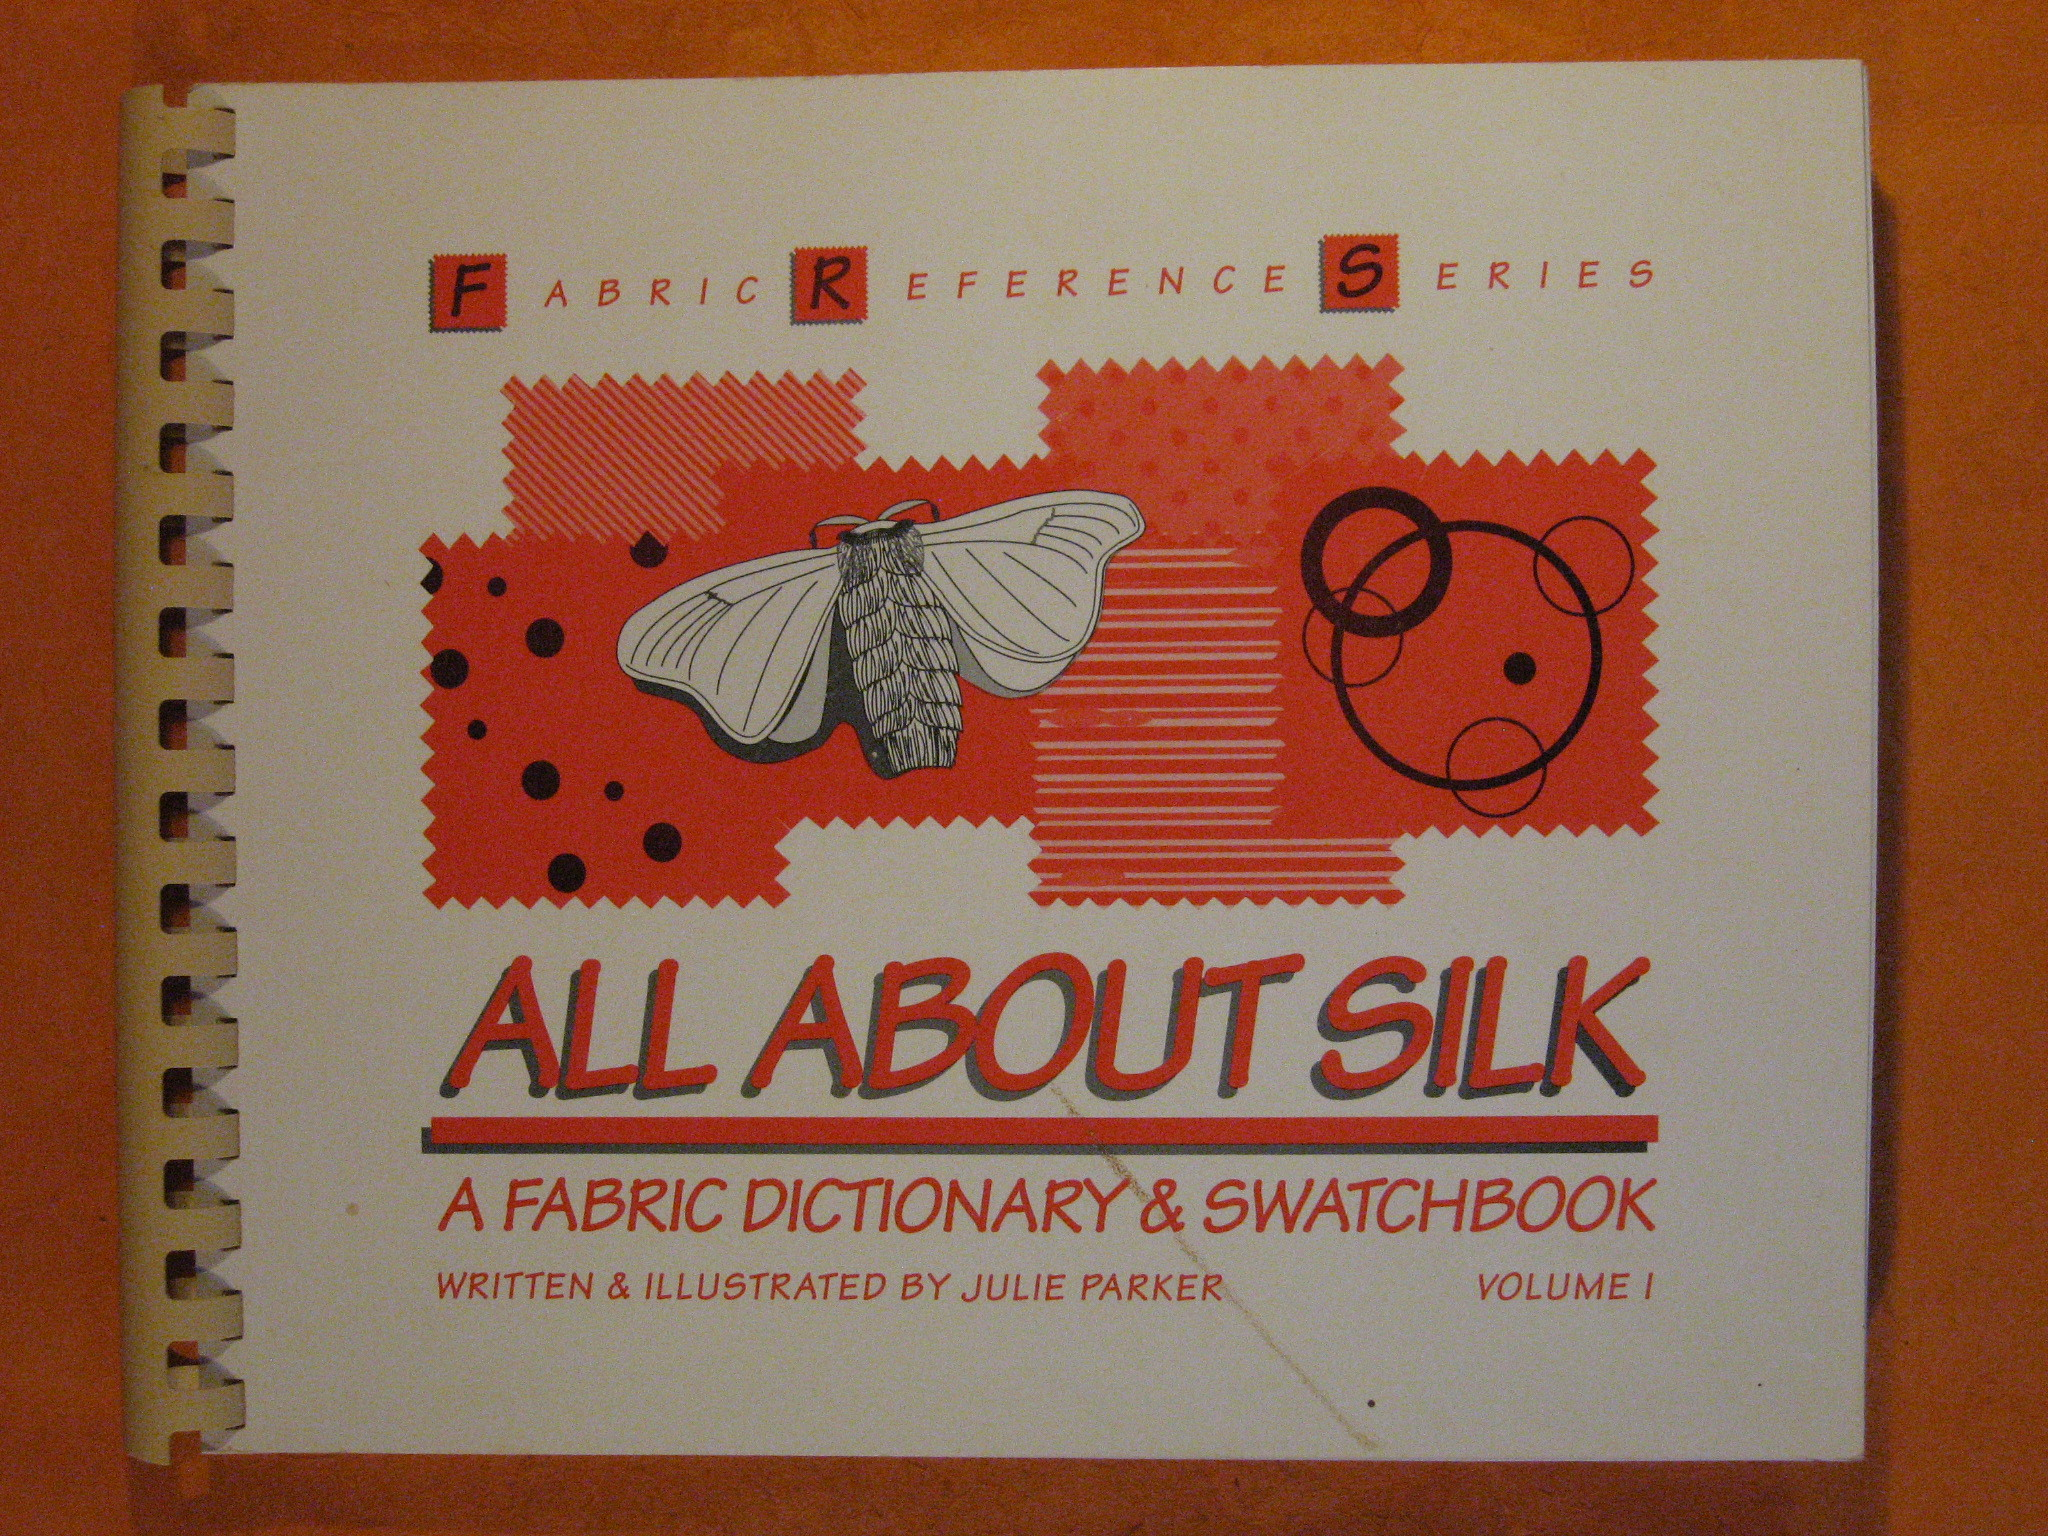 All About Silk: A Fabric Dictionary & Swatchbook (Fabric Reference Series, Volume 1), Parker. Julie